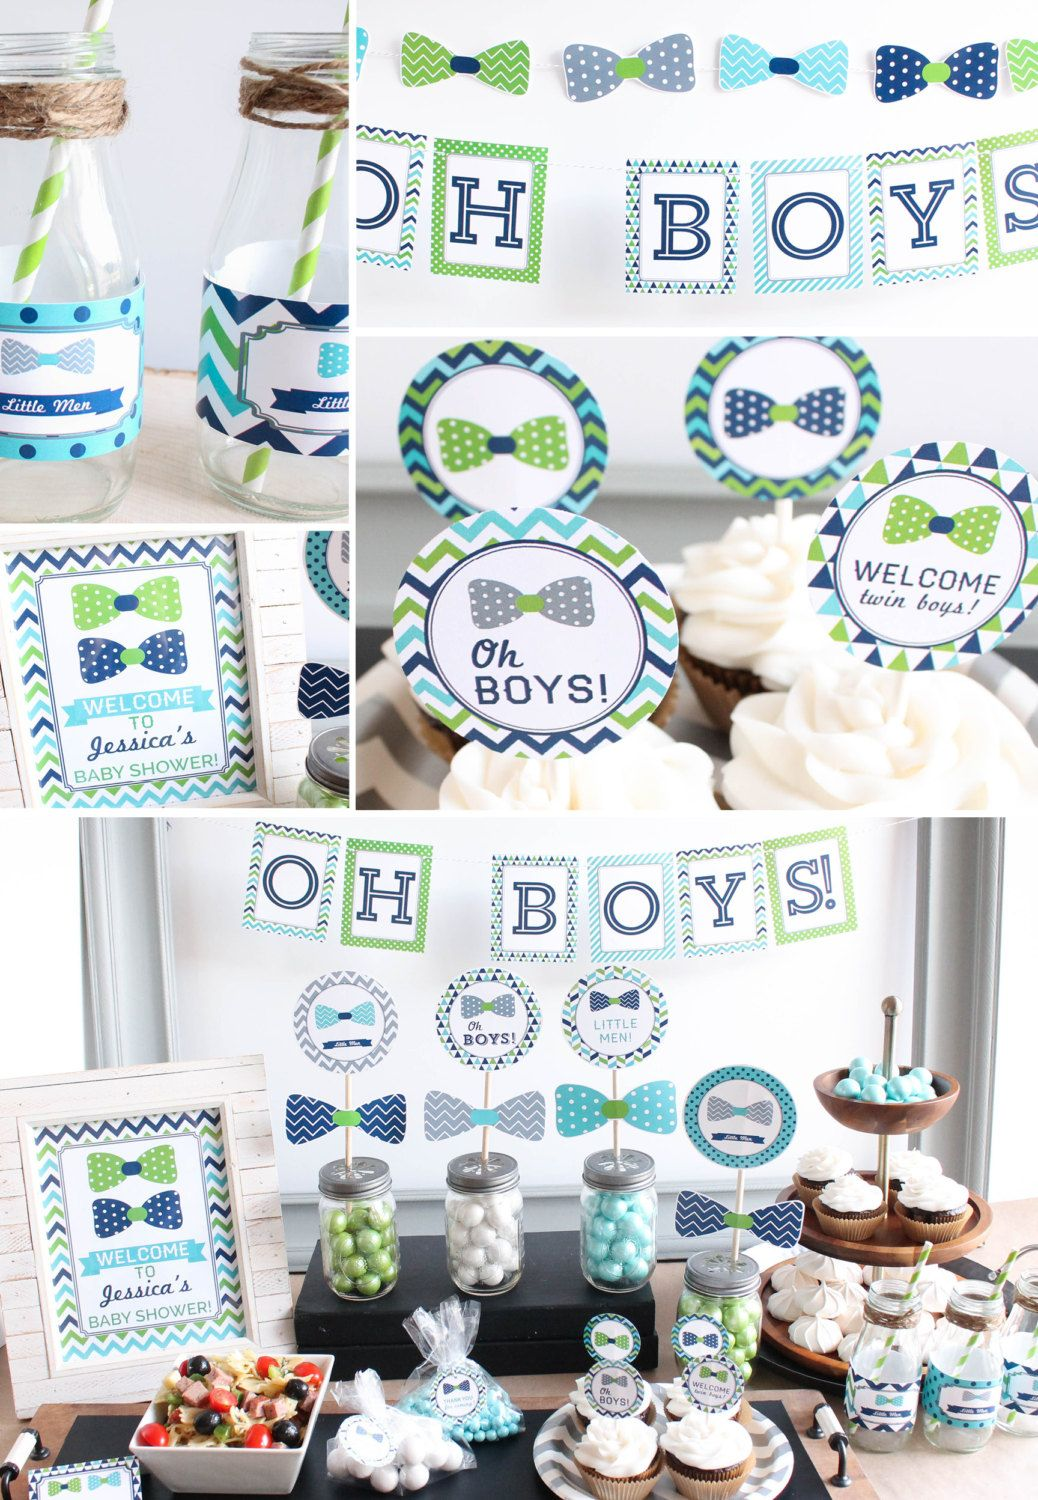 Twin Boys Baby Shower Decorations Bow Tie Lime Green Navy Printable B Baby Shower Decorations For Boys Twin Baby Shower Favor Twin Boy Baby Shower Decorations